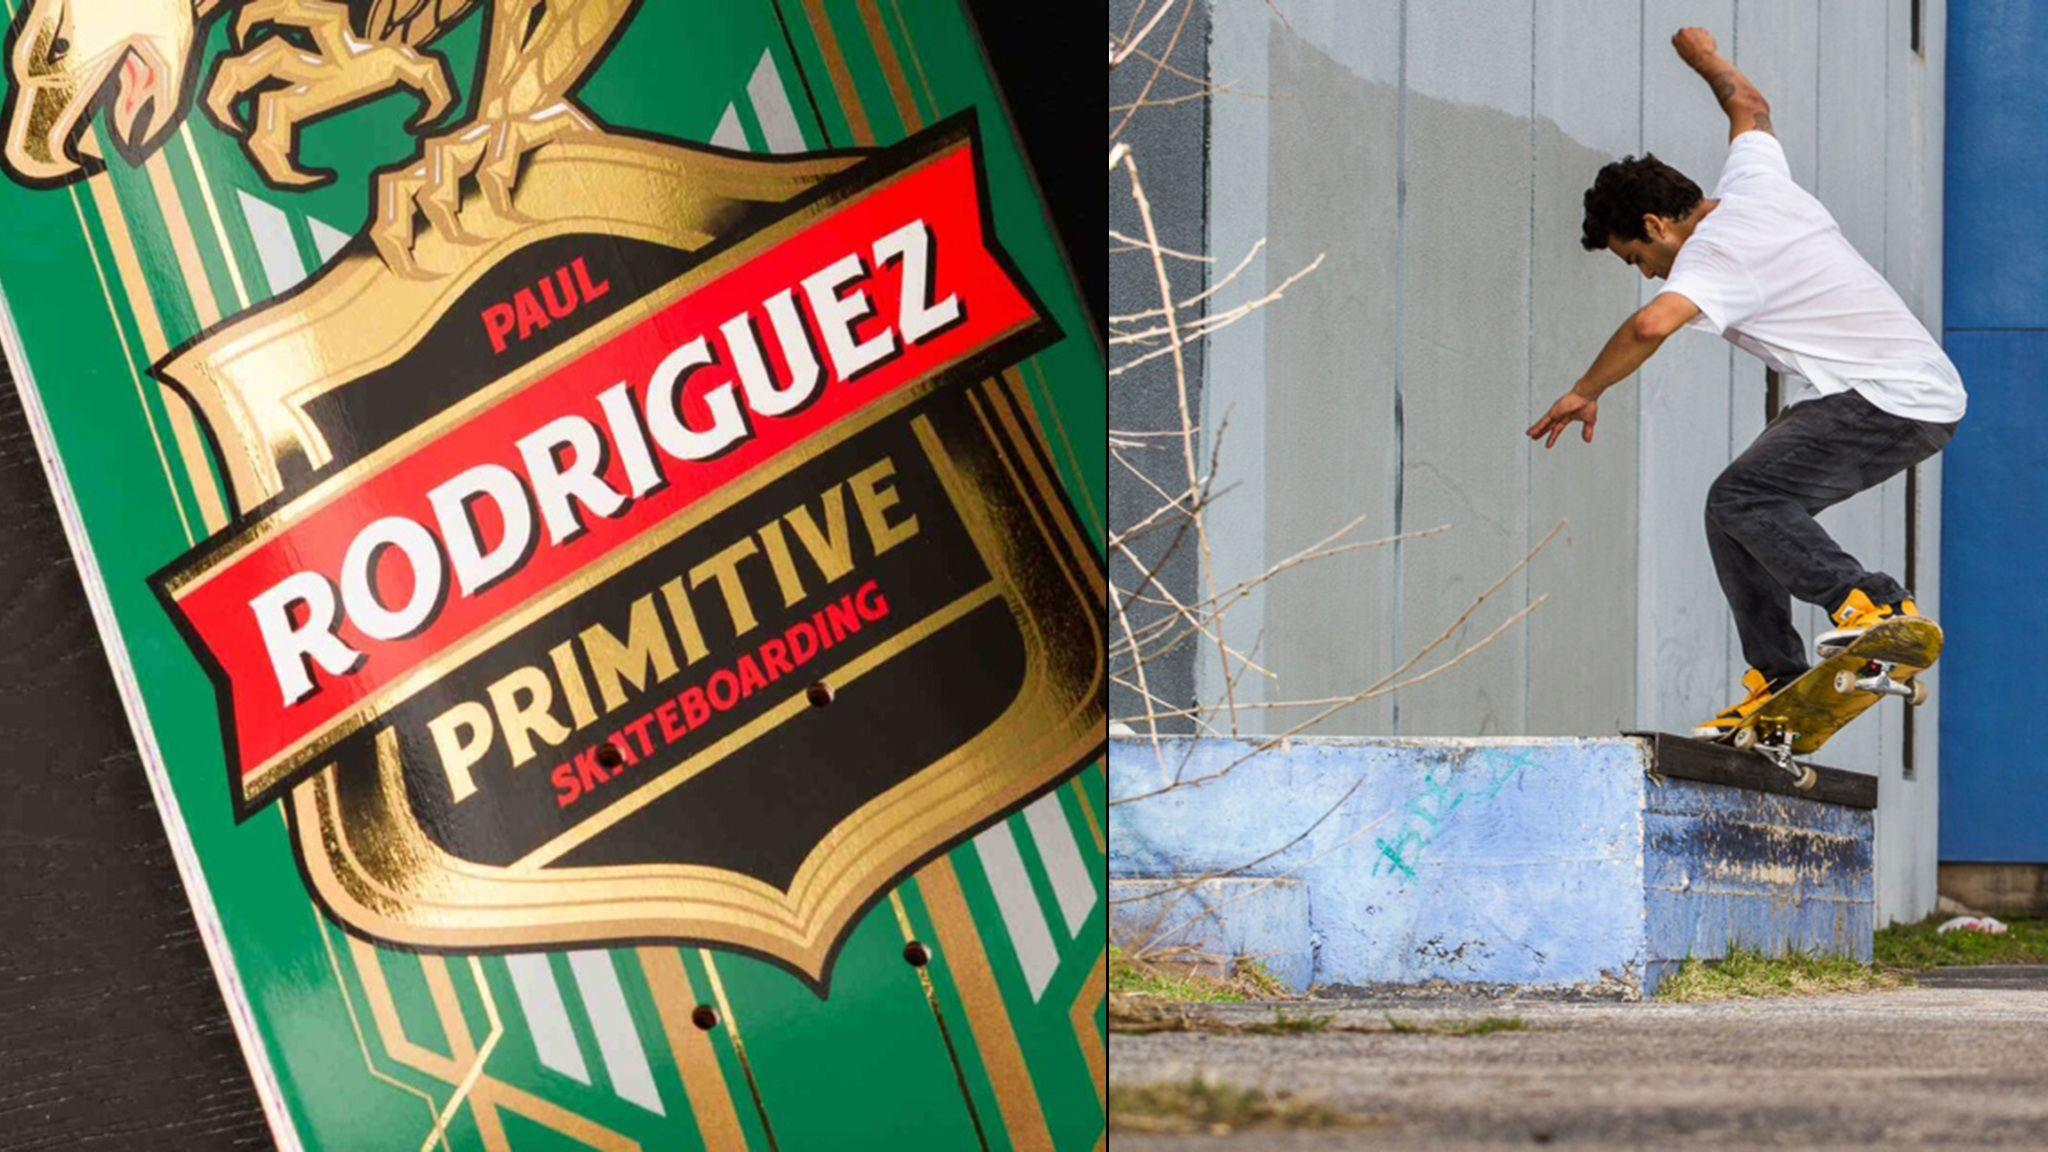 Rodriguez launches Primitive Skateboarding brand